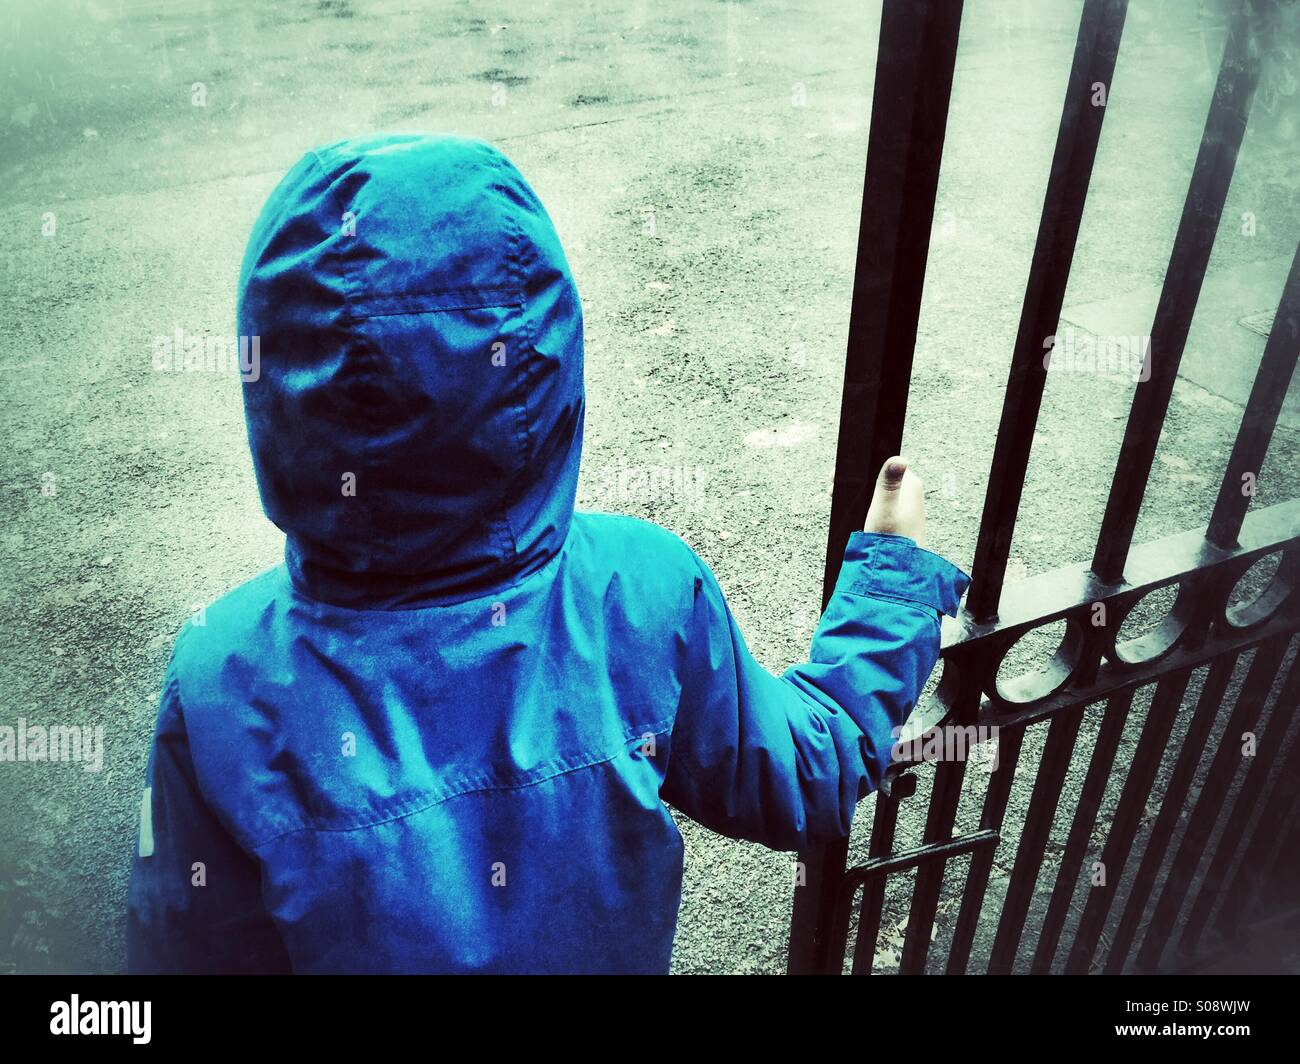 Little boy in blue coat waiting by the gate - Stock Image